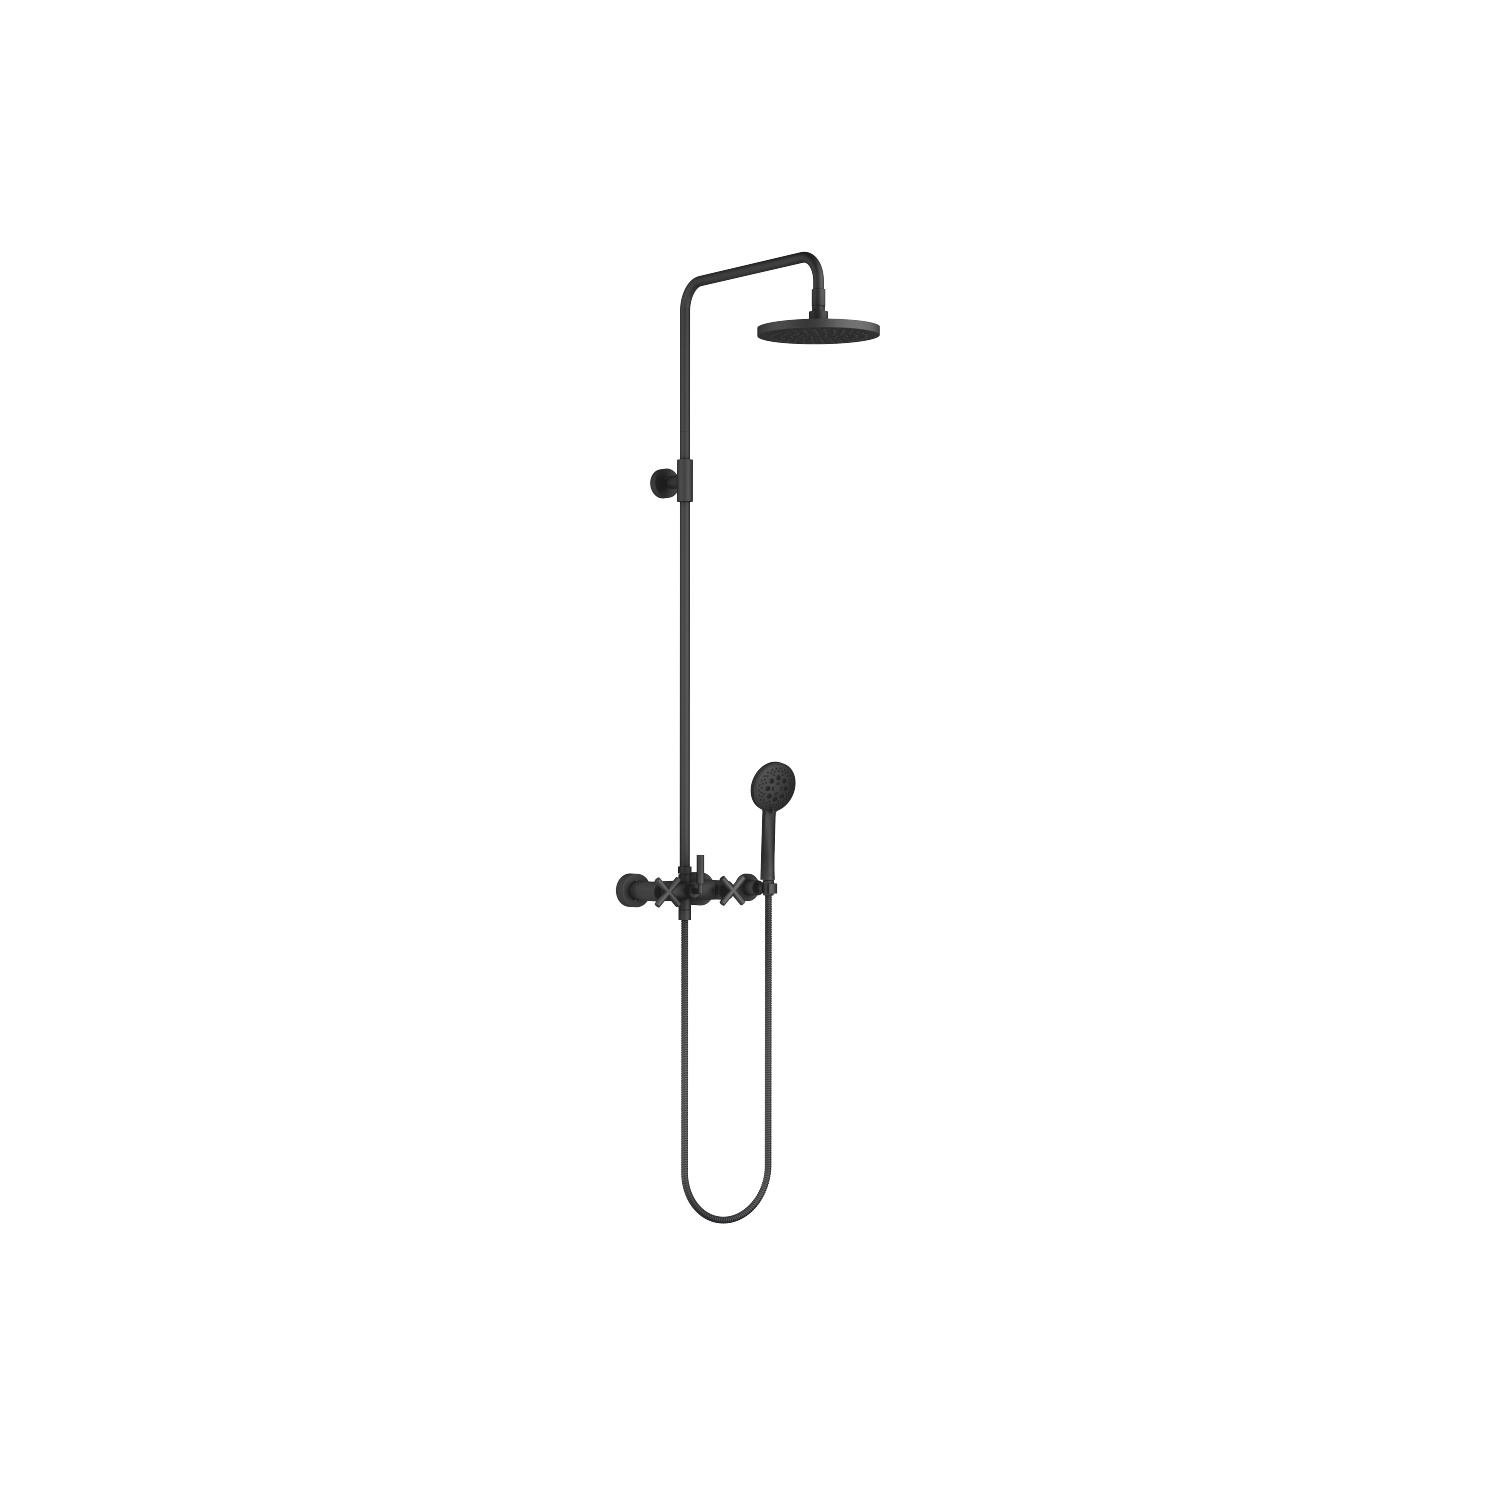 Shower mixer for wall mounting with fixed and hand shower - matt black